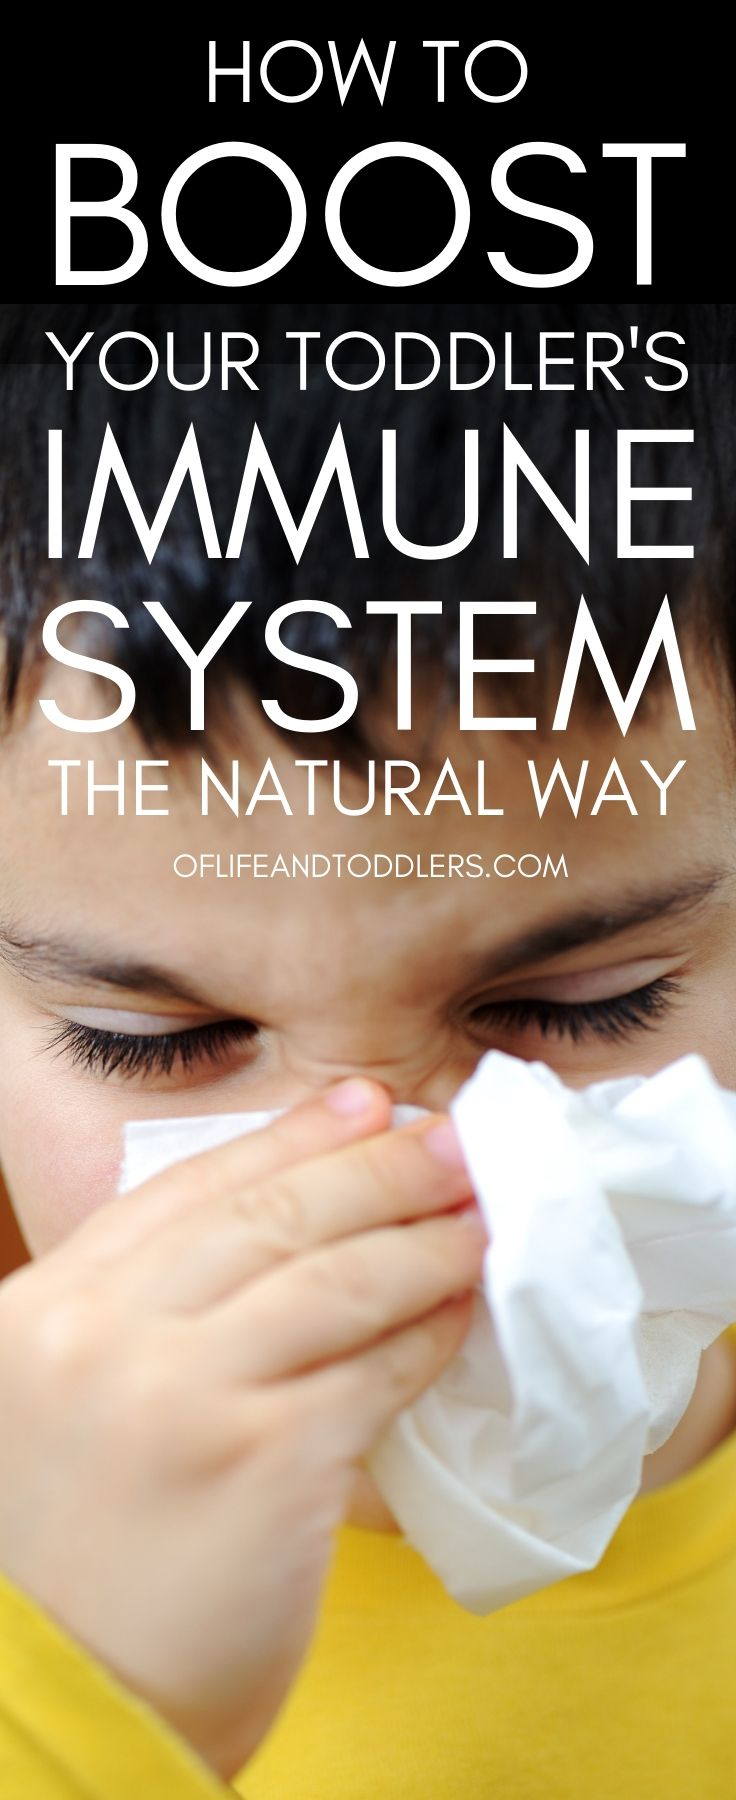 8 Simple Ways to Naturally Boost Your Toddler's Immune ...